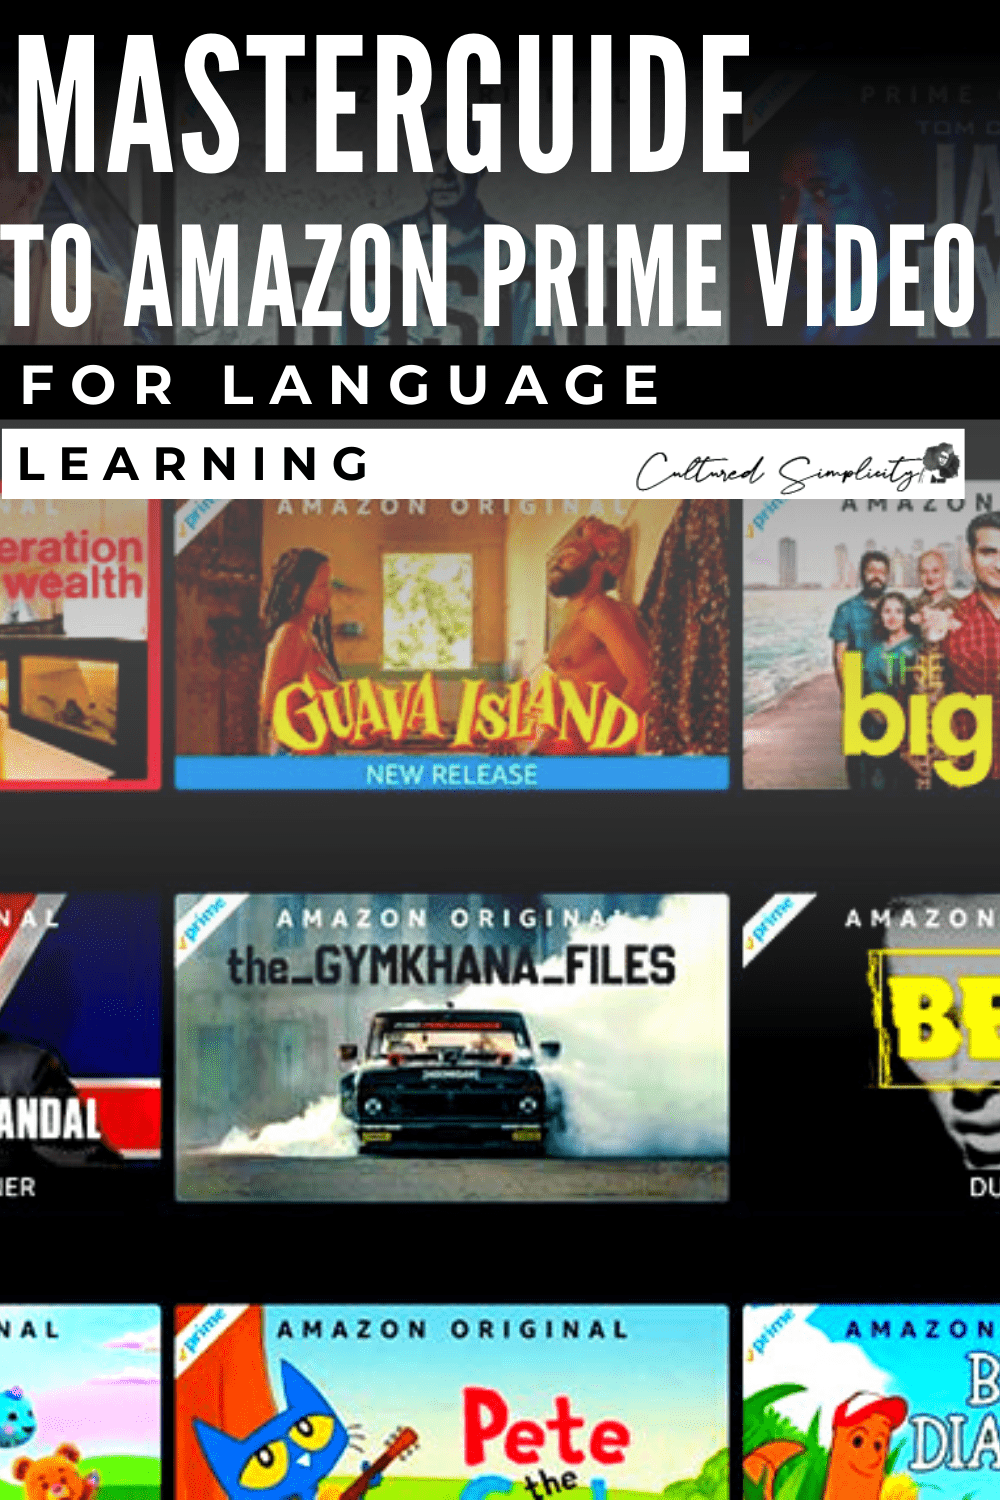 Master guide to Amazon Prime Video for Language Learning